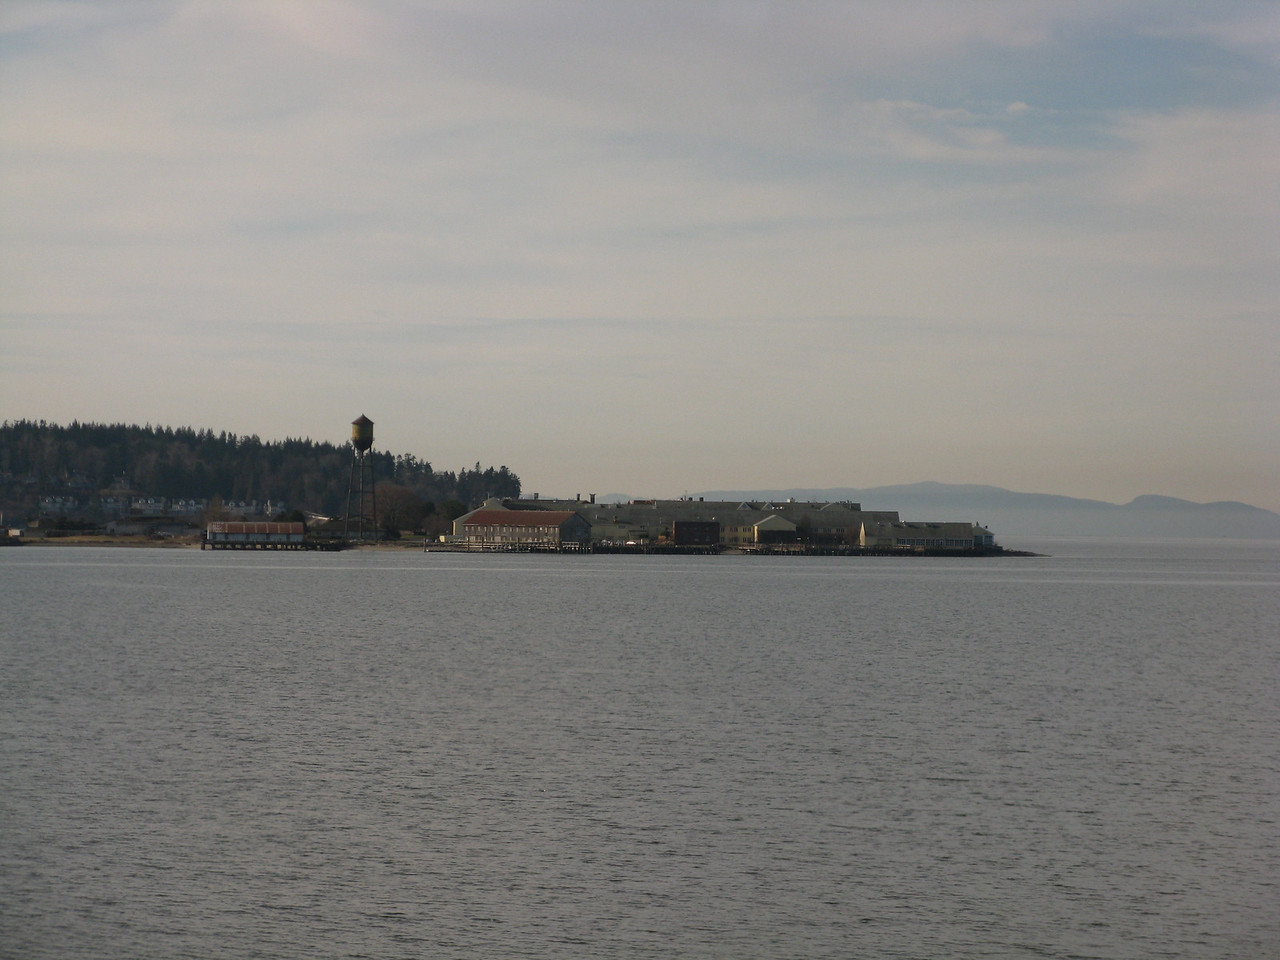 Semiahmoo sits across Drayton Harbor from the Canadian-U.S. border crossing at Blaine, Washington.